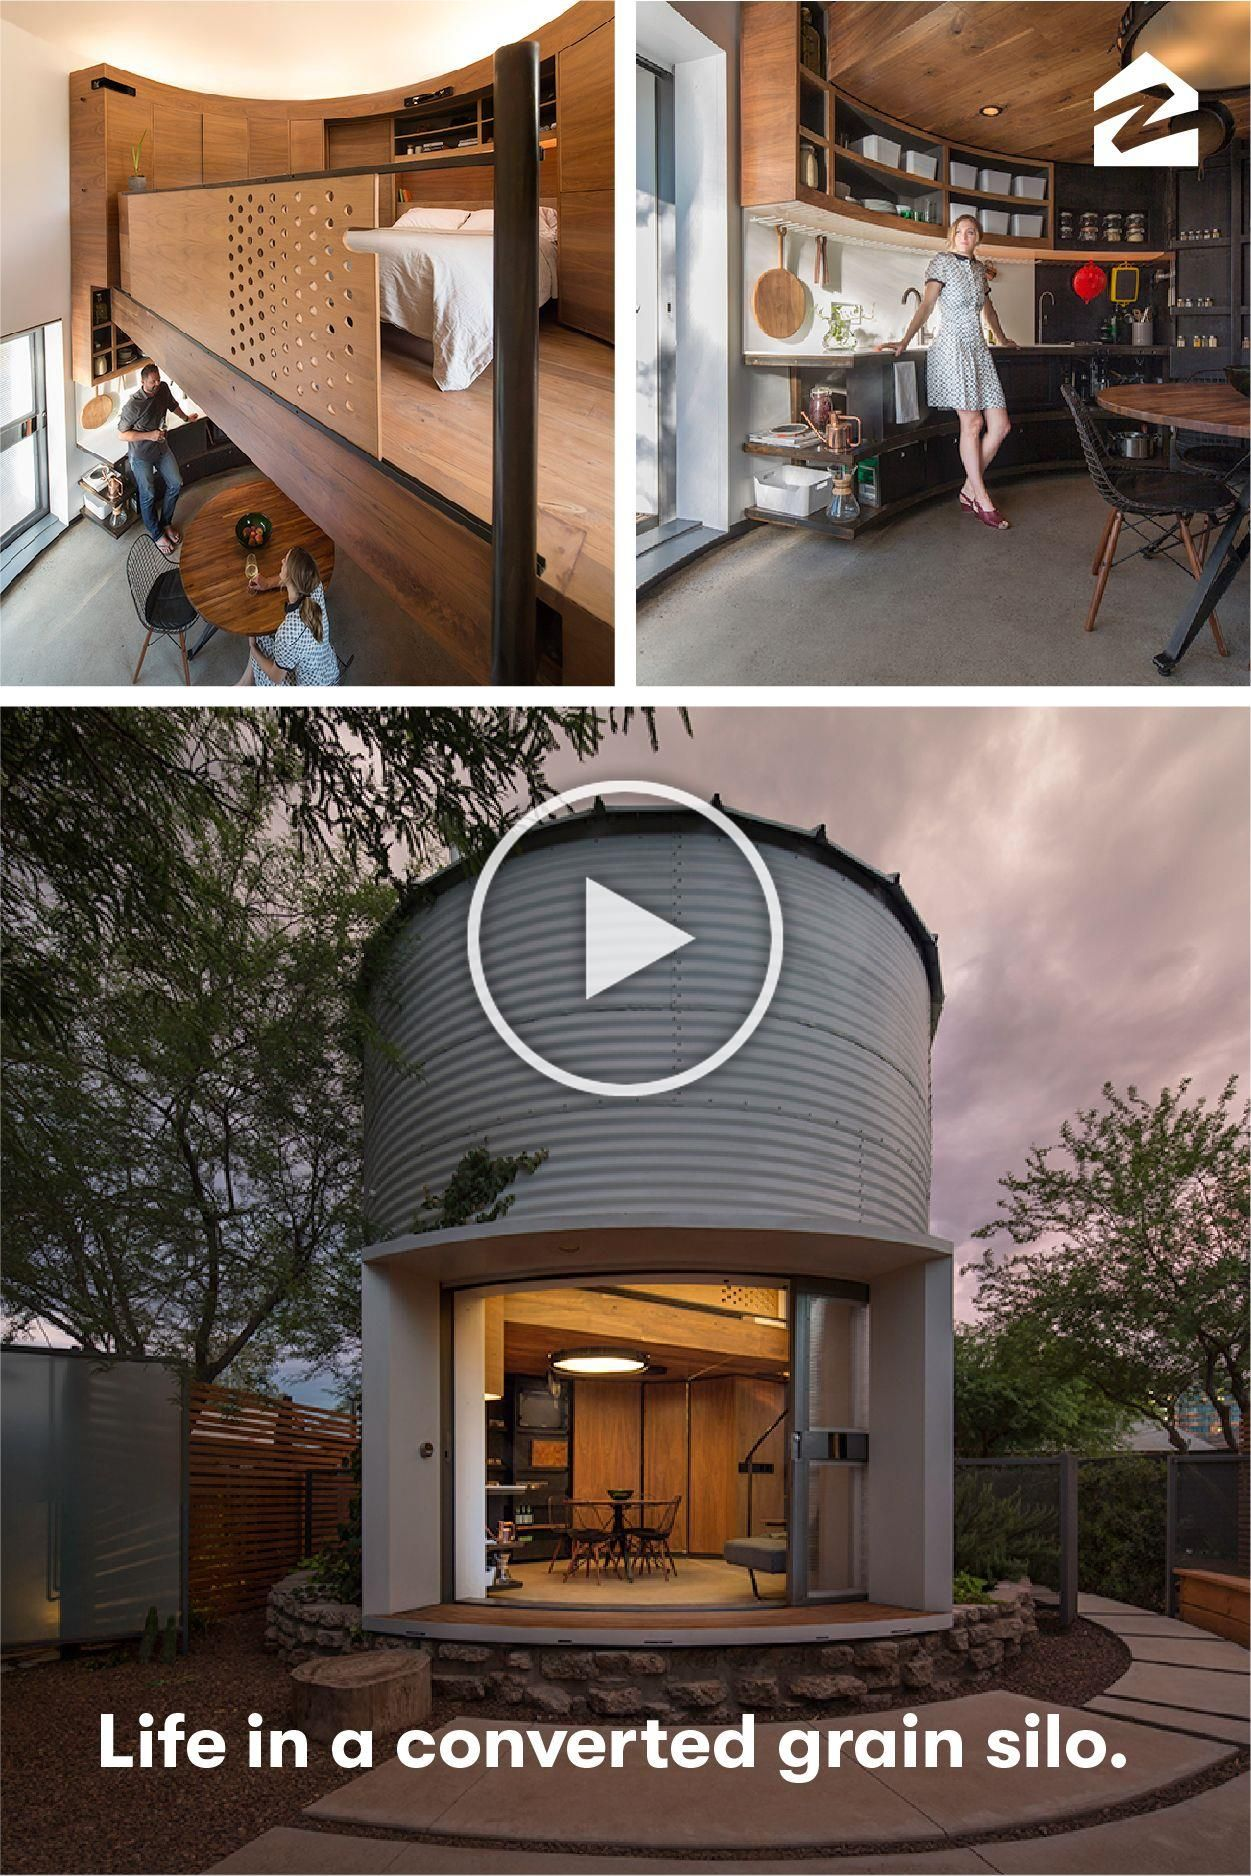 This Grain Silo Design May Be Unconventional But The Minimalist Living Ideas Are Genius Silo House Unusual Homes House